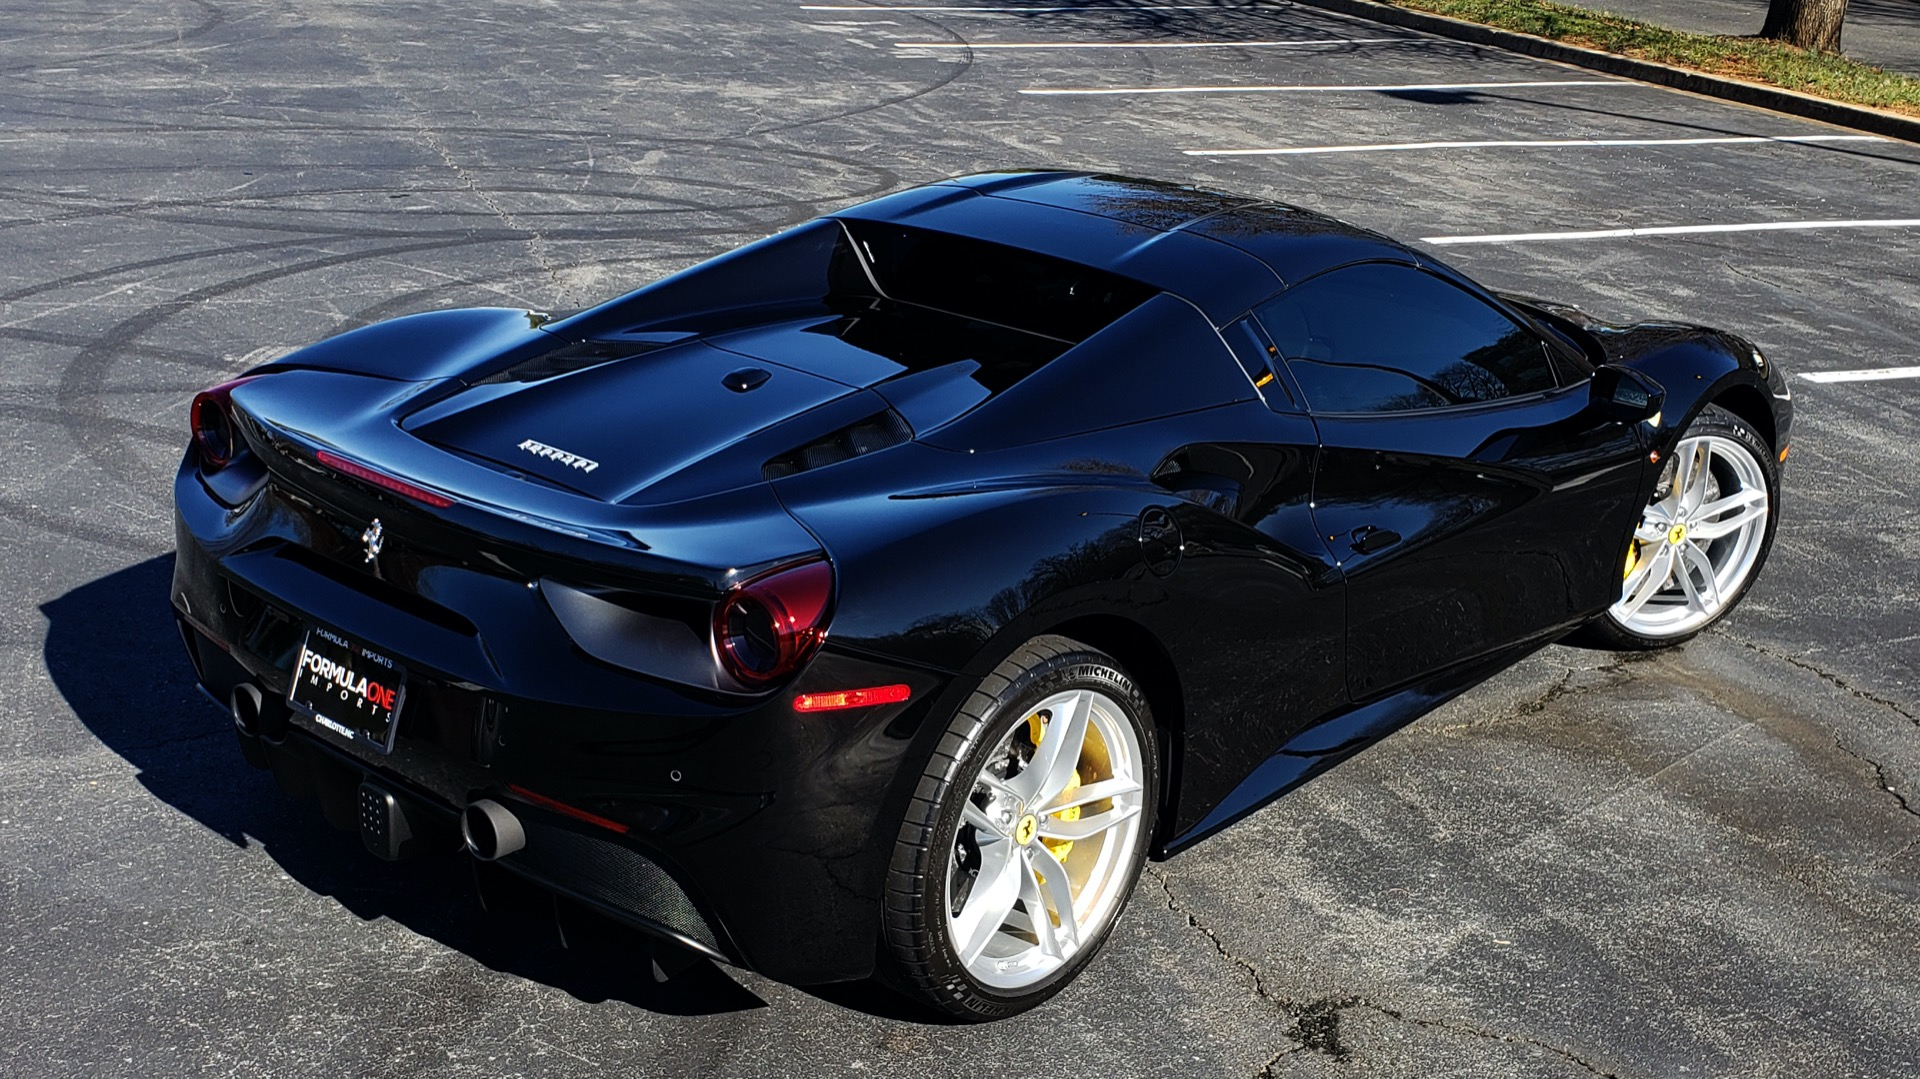 Used 2017 Ferrari 488 Spider SUSP LFT / JBL SND / SPRT EXH / F1 TRANS for sale $315,000 at Formula Imports in Charlotte NC 28227 16